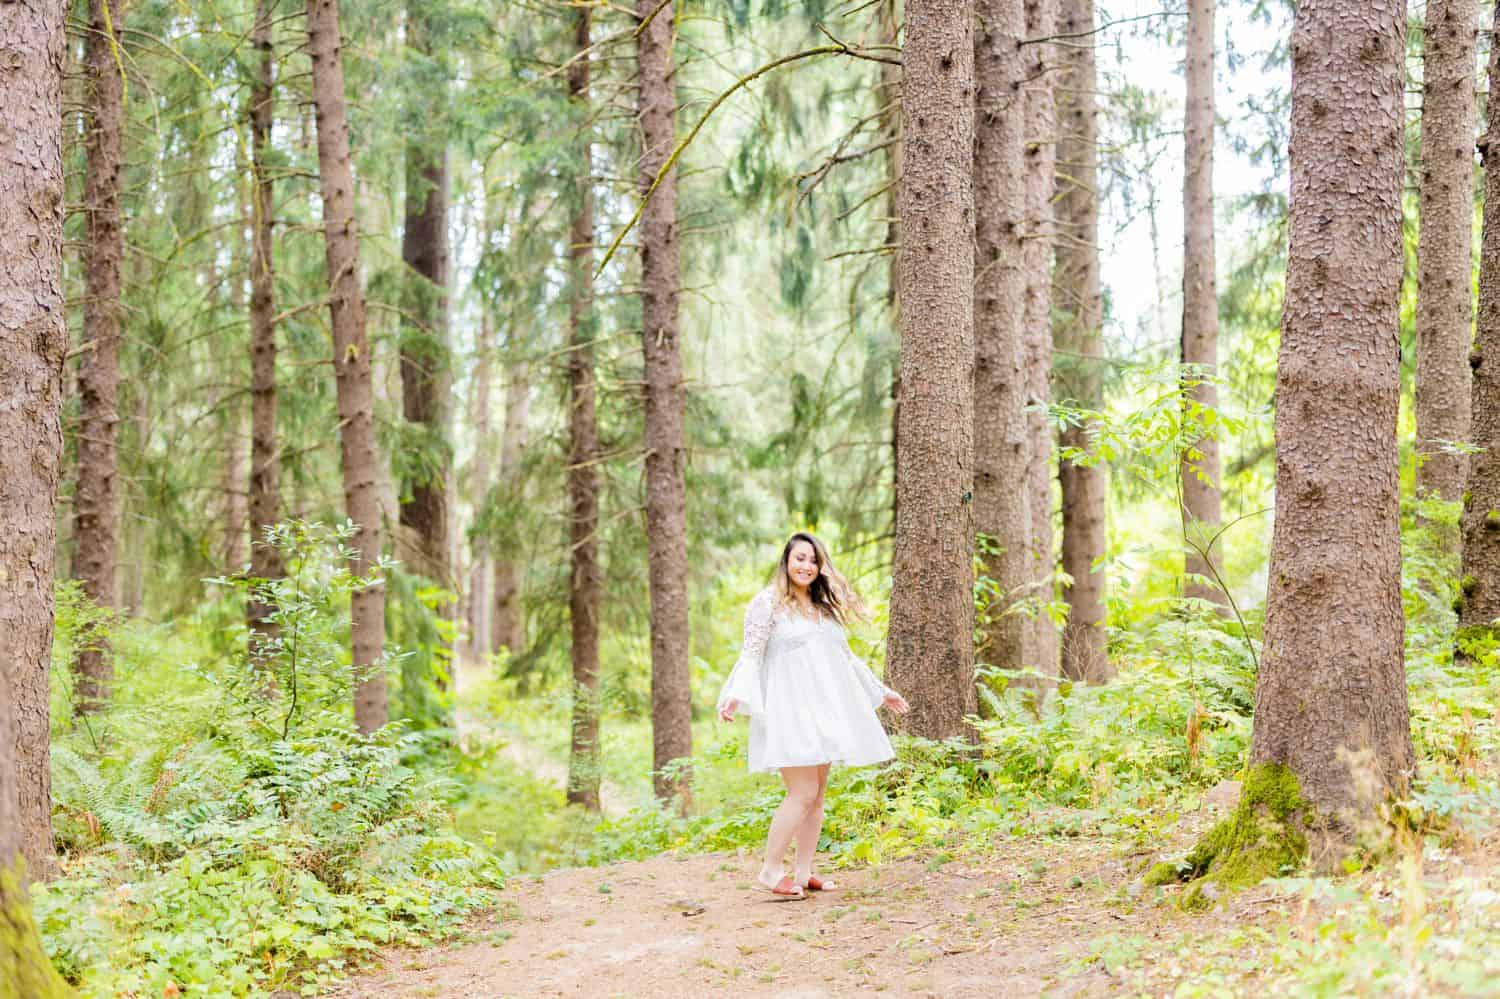 A person in a flowing white dress twirls in the Oregon forest while Sofia Angelina makes photographs